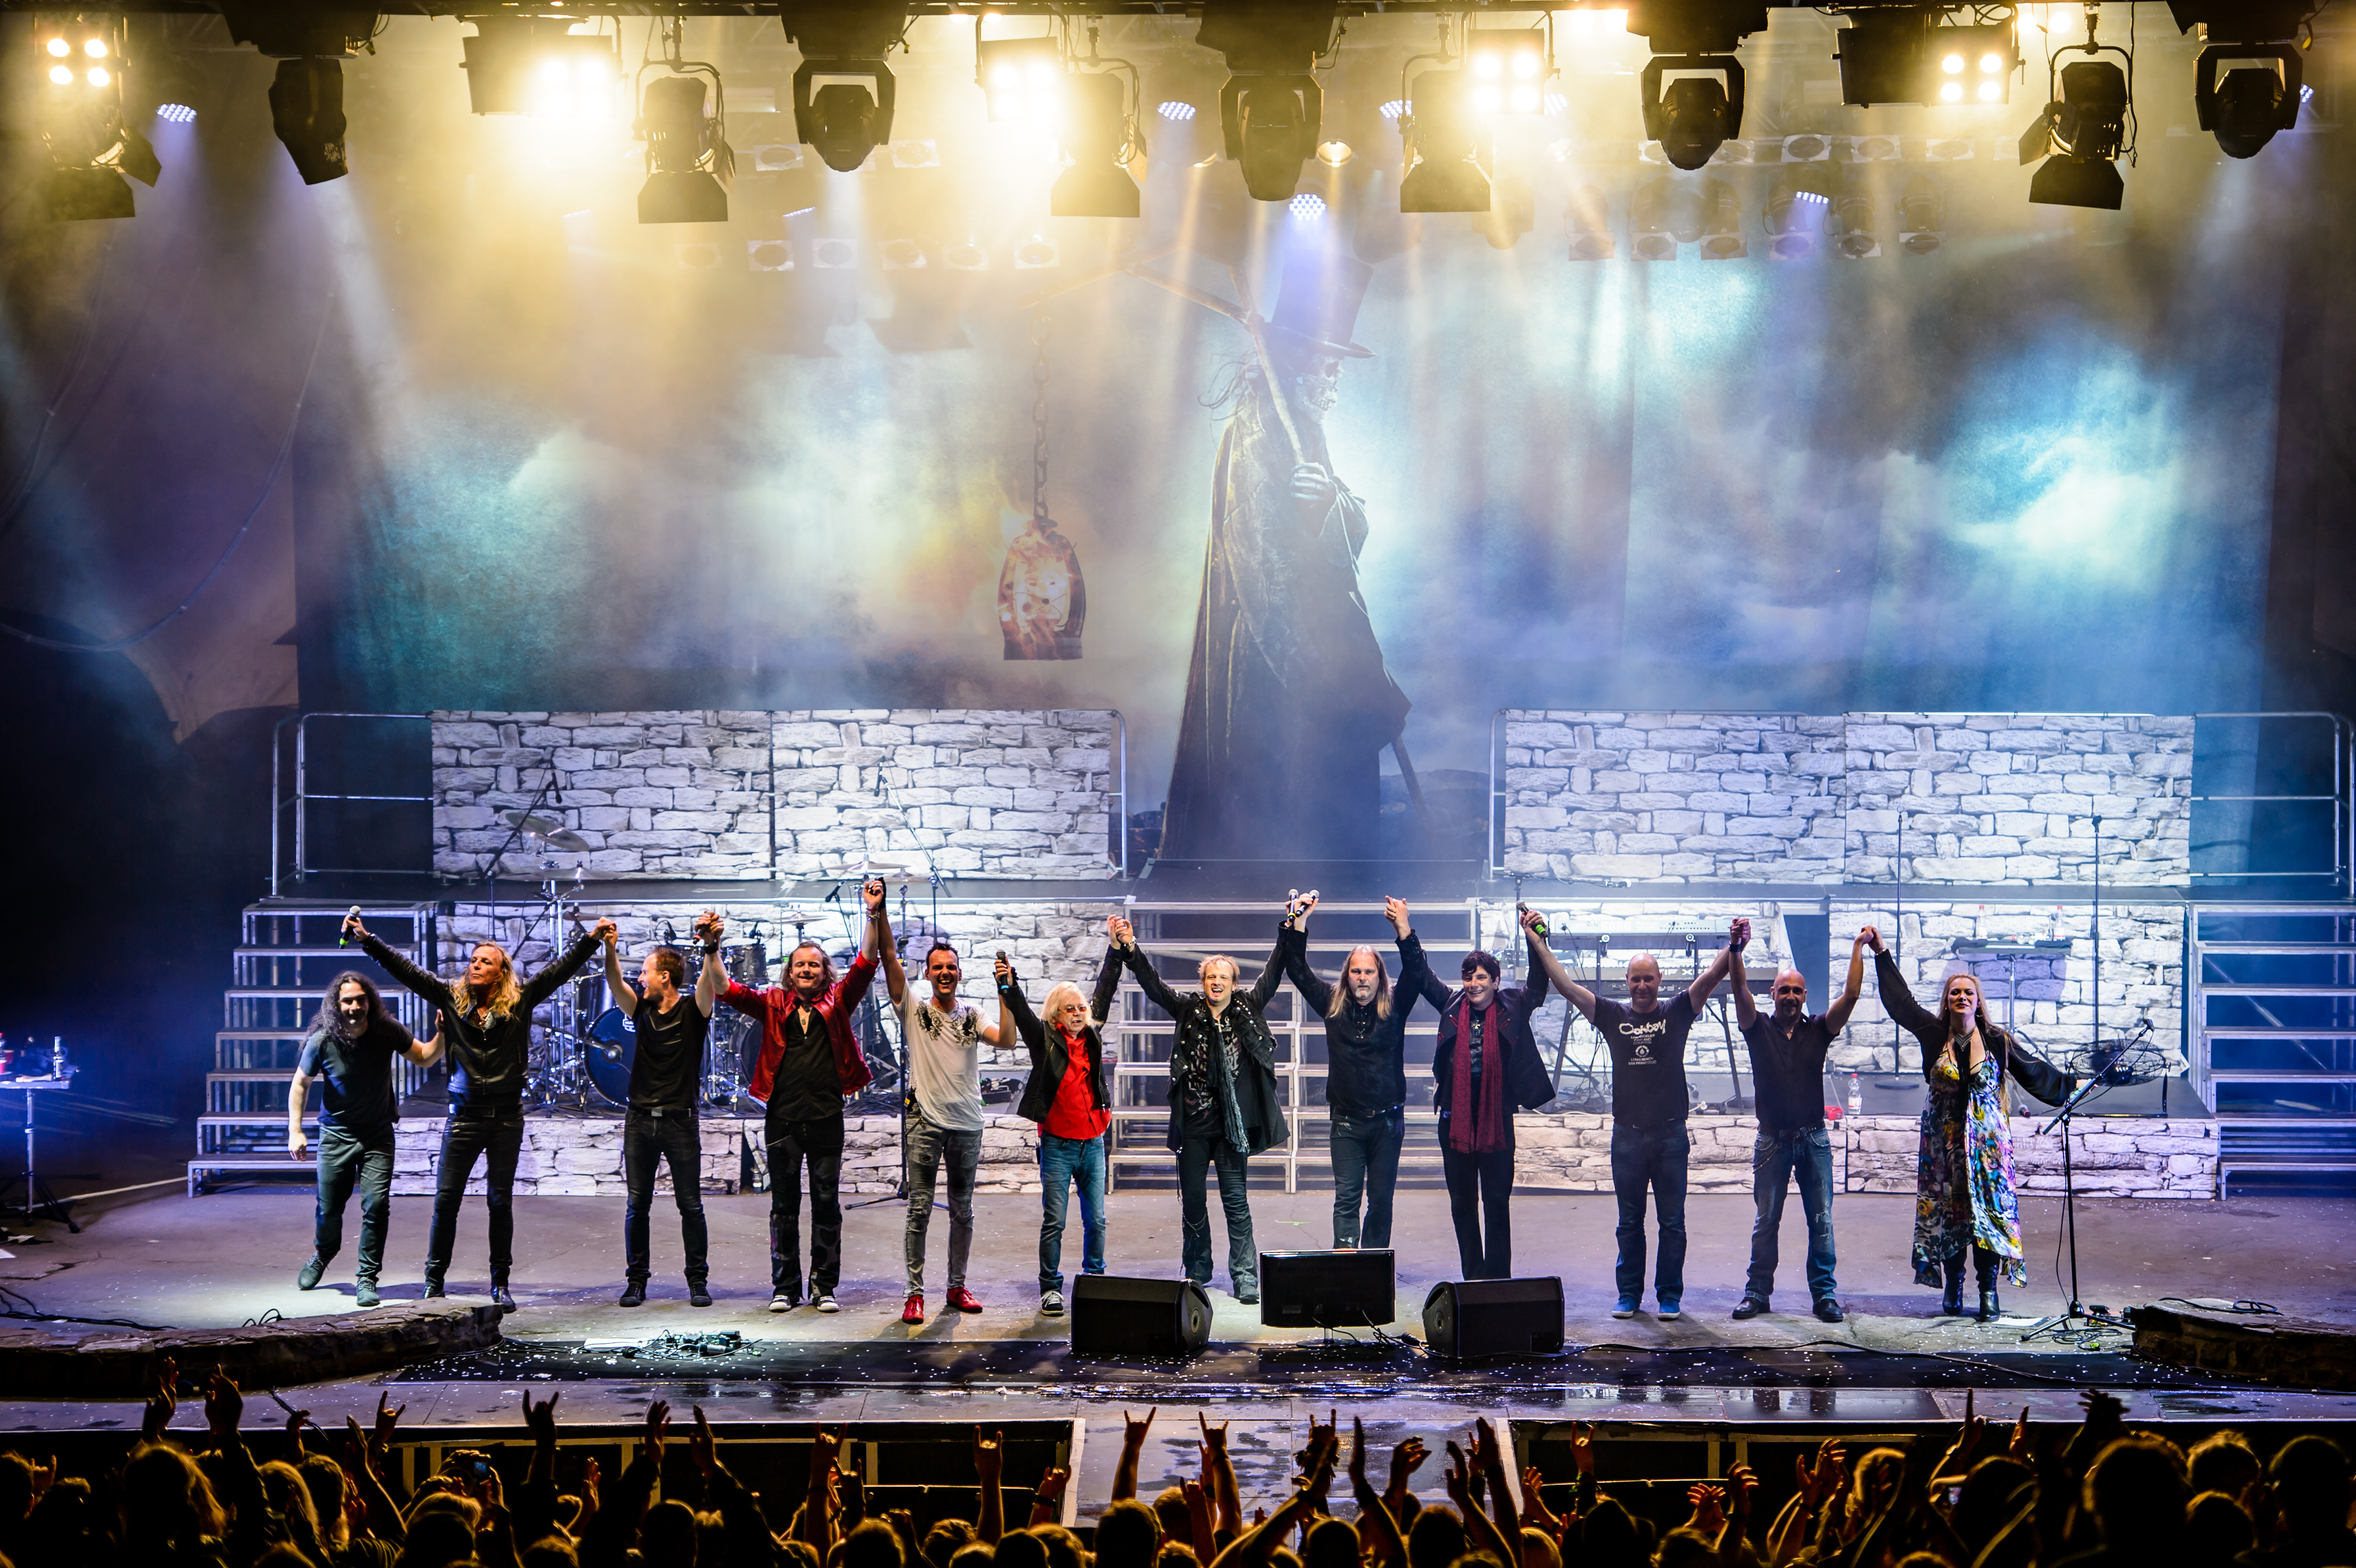 Avantasia performing in [[Lorelei]], Germany, in 2016